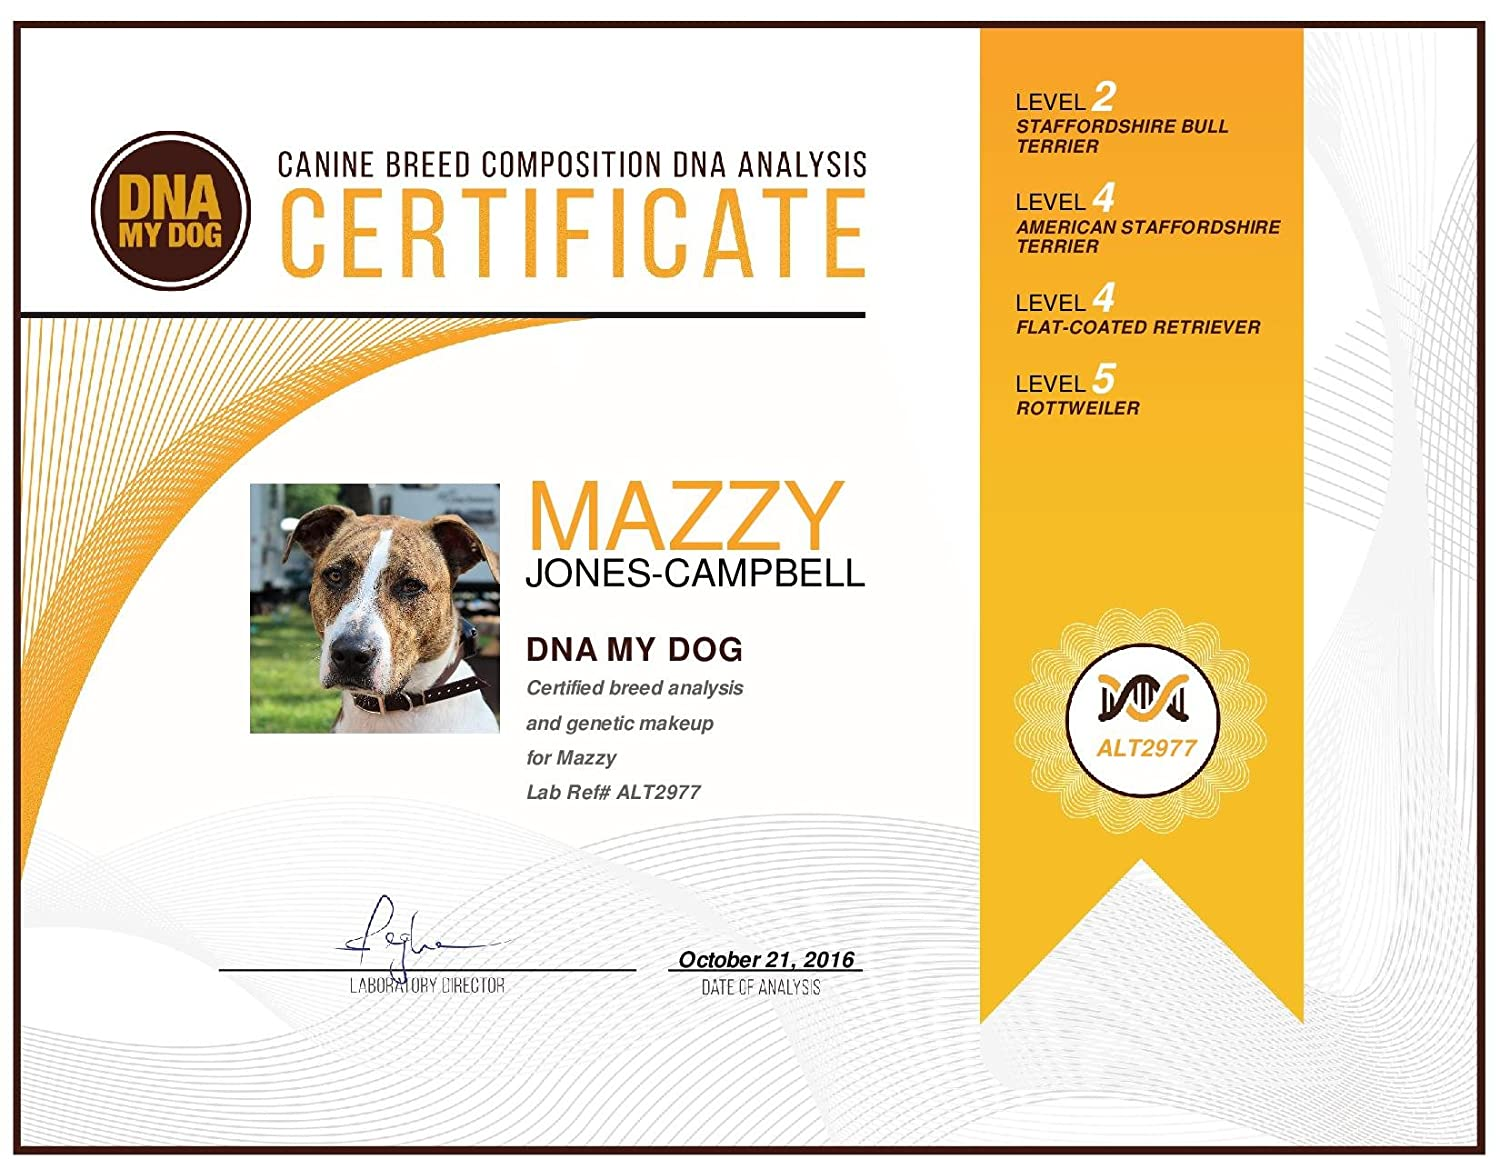 Amazon dna my dog canine breed identification test kit amazon dna my dog canine breed identification test kit at home cheek swab kit personality traits by dna my dog pet supplies 1betcityfo Image collections